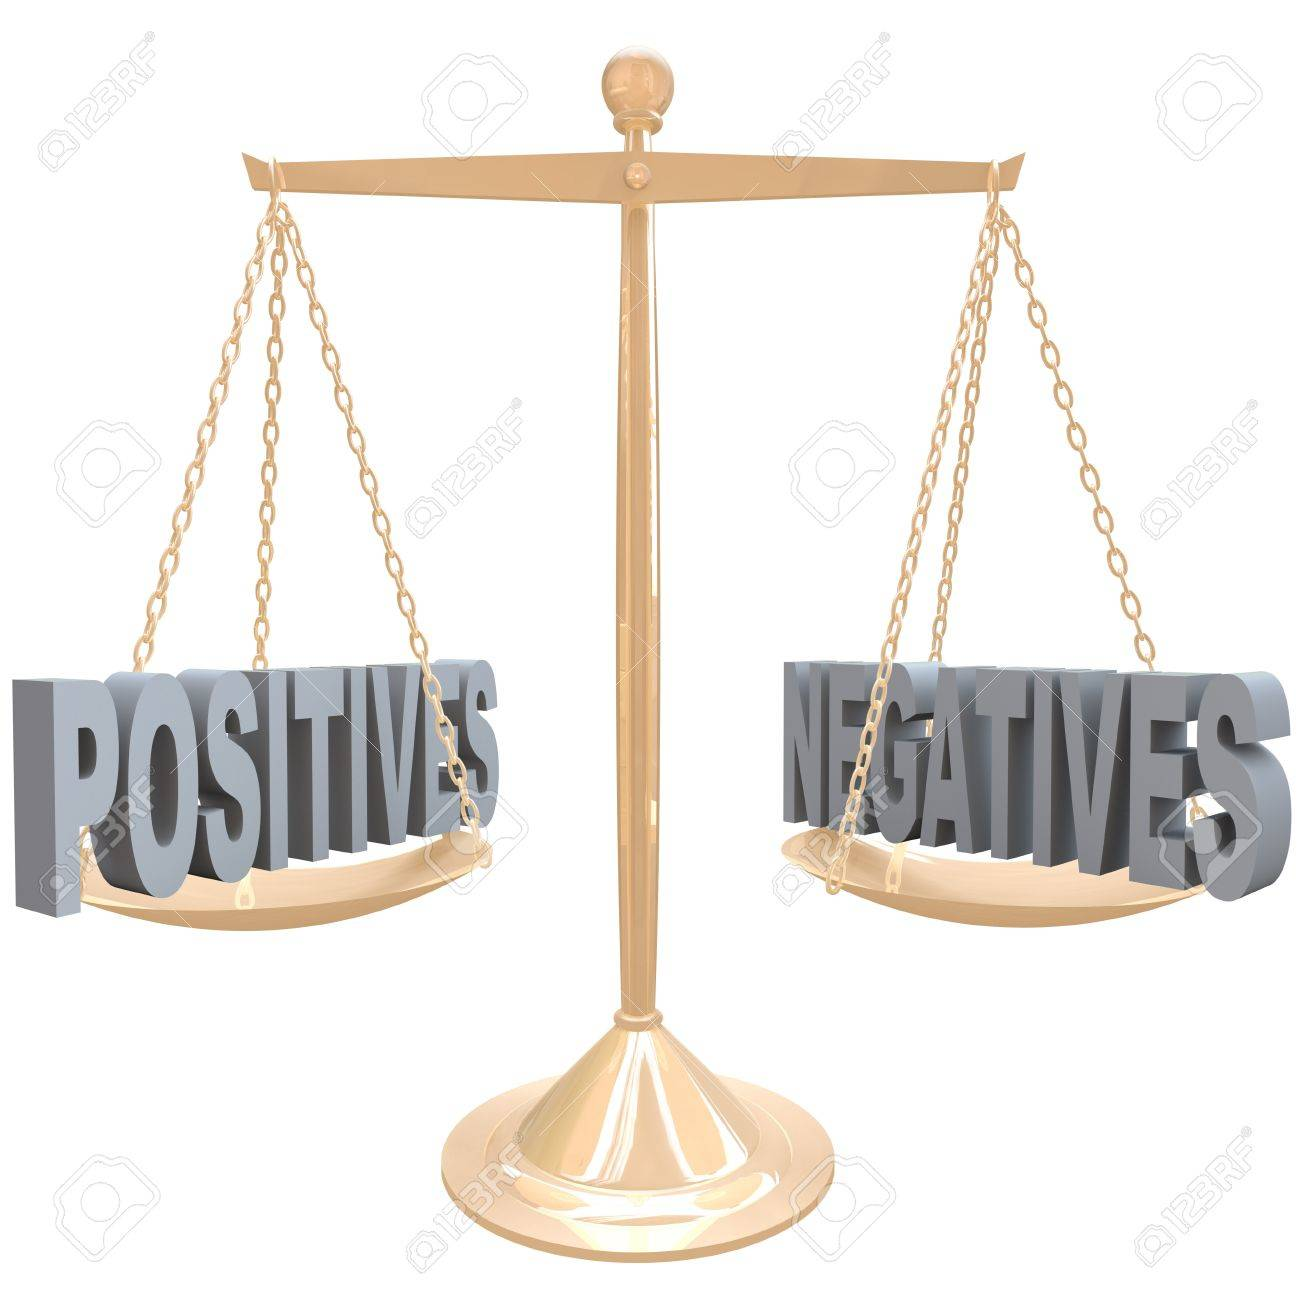 The words Positives and Negatives on opposite sides on a gold metal scale, symbolizing the comparision of differences between two choices or options Stock Photo - 17674141